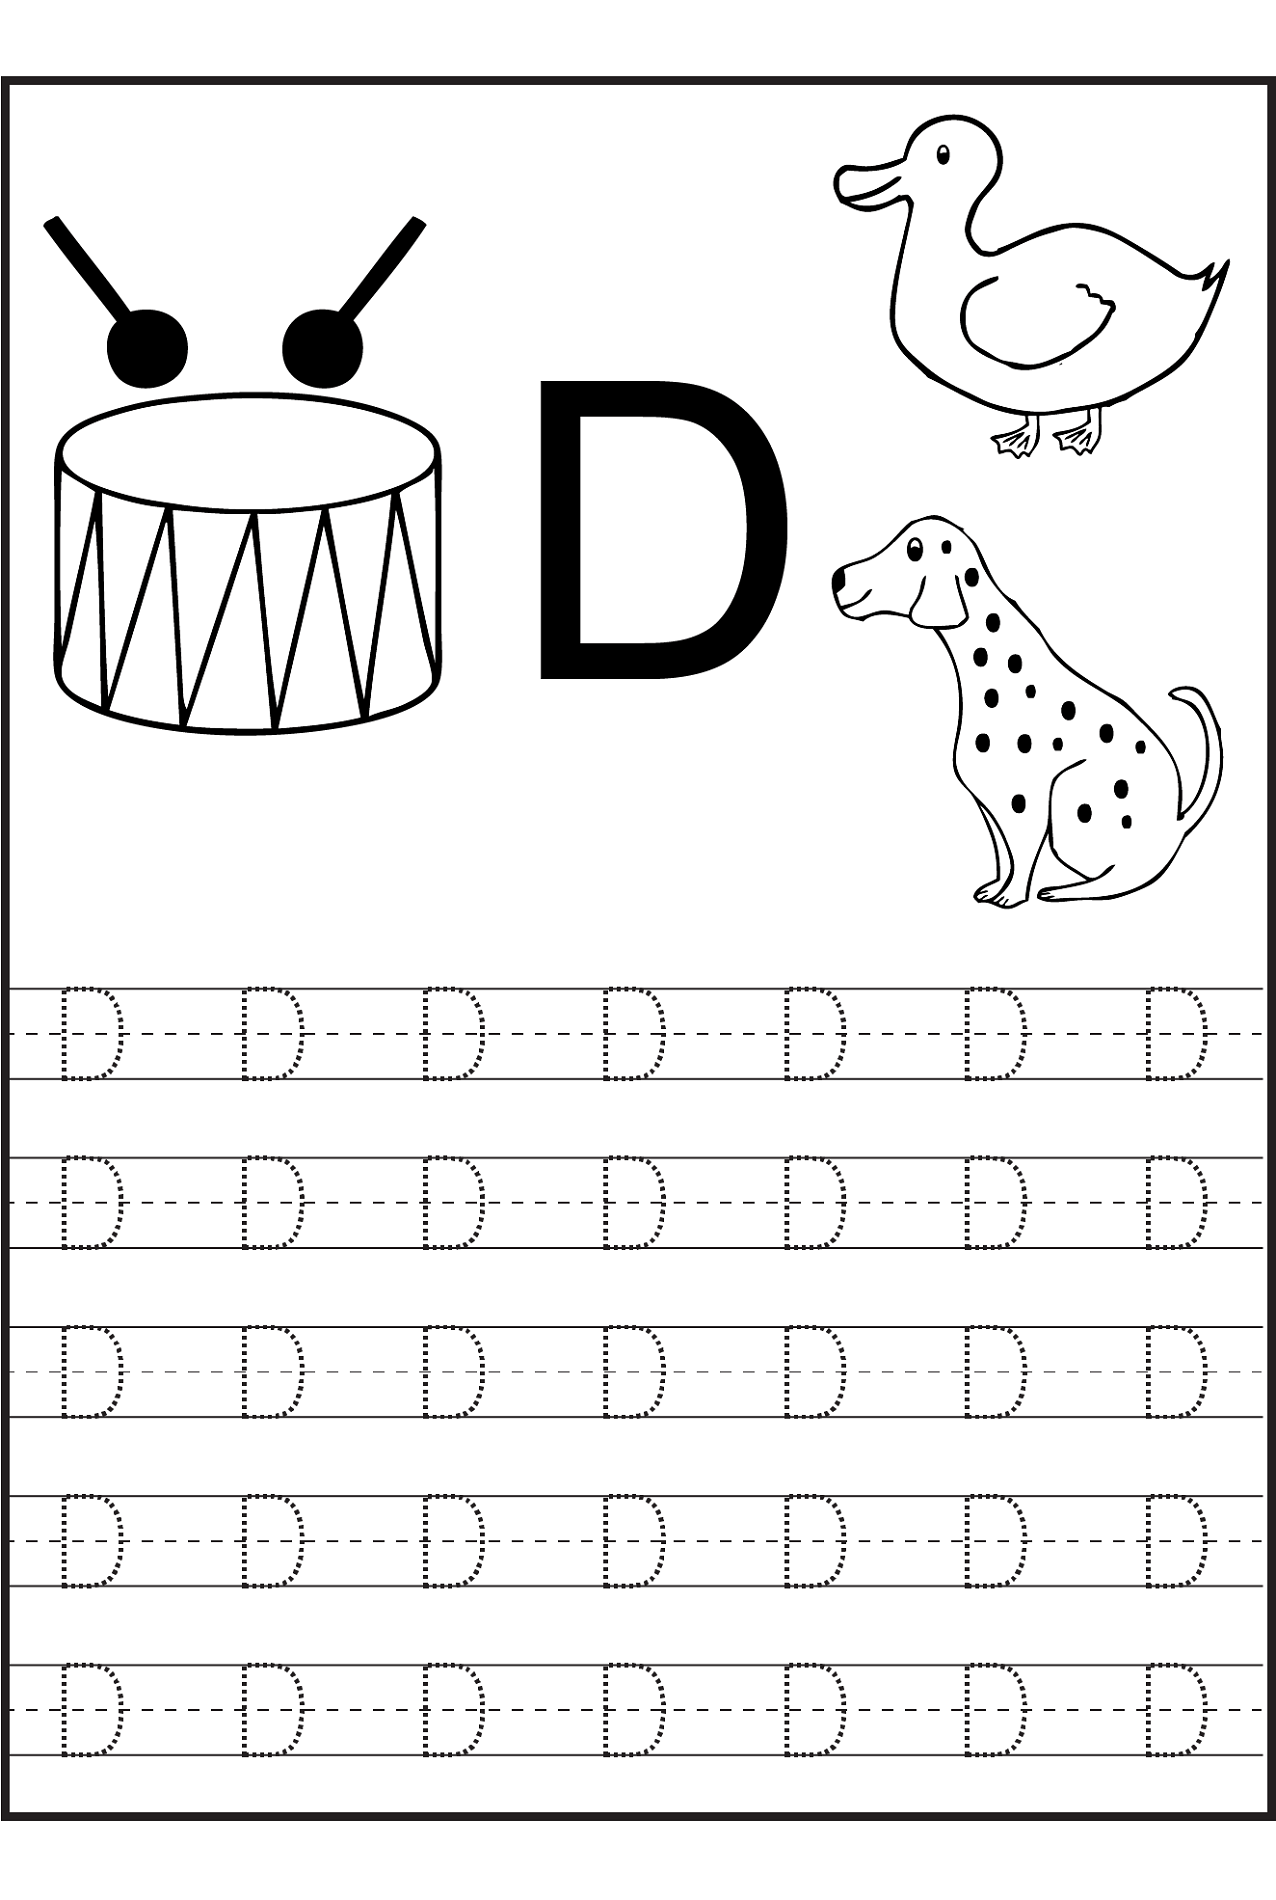 Preschool Alphabet Worksheets Activity Shelter Preschool